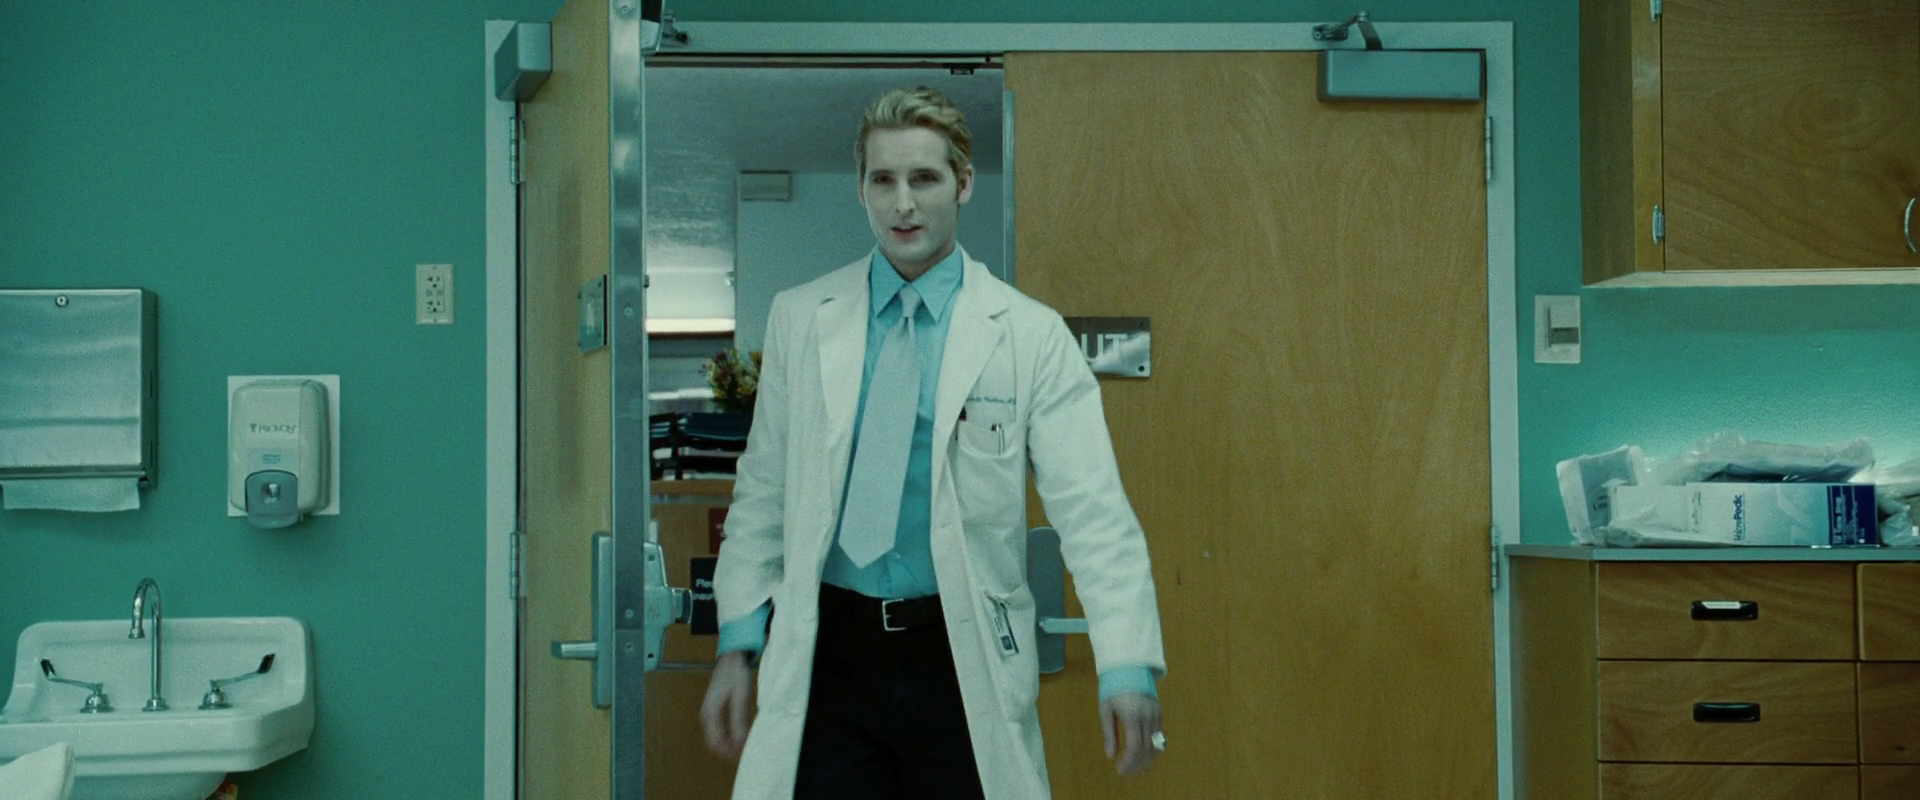 1080p resolution Carlisle images from Twilight - Carlisle Cullen